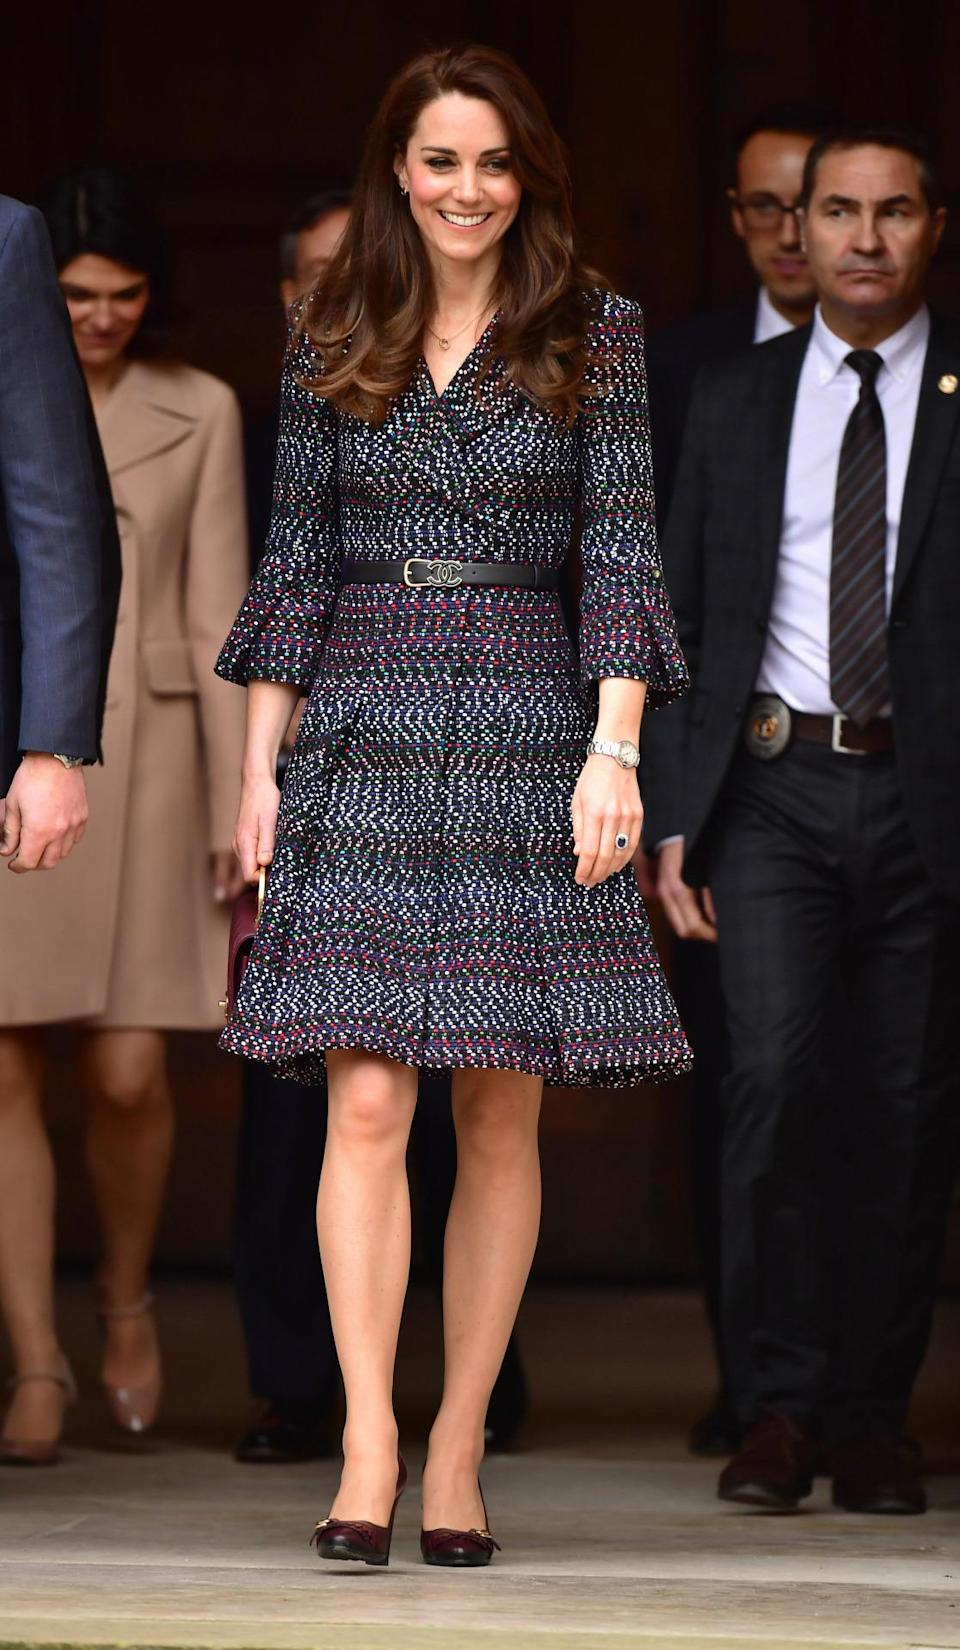 <p>When in Paris, why not wear multiple Chanel pieces? For her last day in the French capital, the Duchess wore a tweed coat dress by the Parisian brand with a Chanel logo belt and quilted burgundy bag. Chanel shoes weren't on the menu for Kate chose her trusty fringed leather pumps by Tod's. </p><p><i>[Photo: PA]</i> </p>